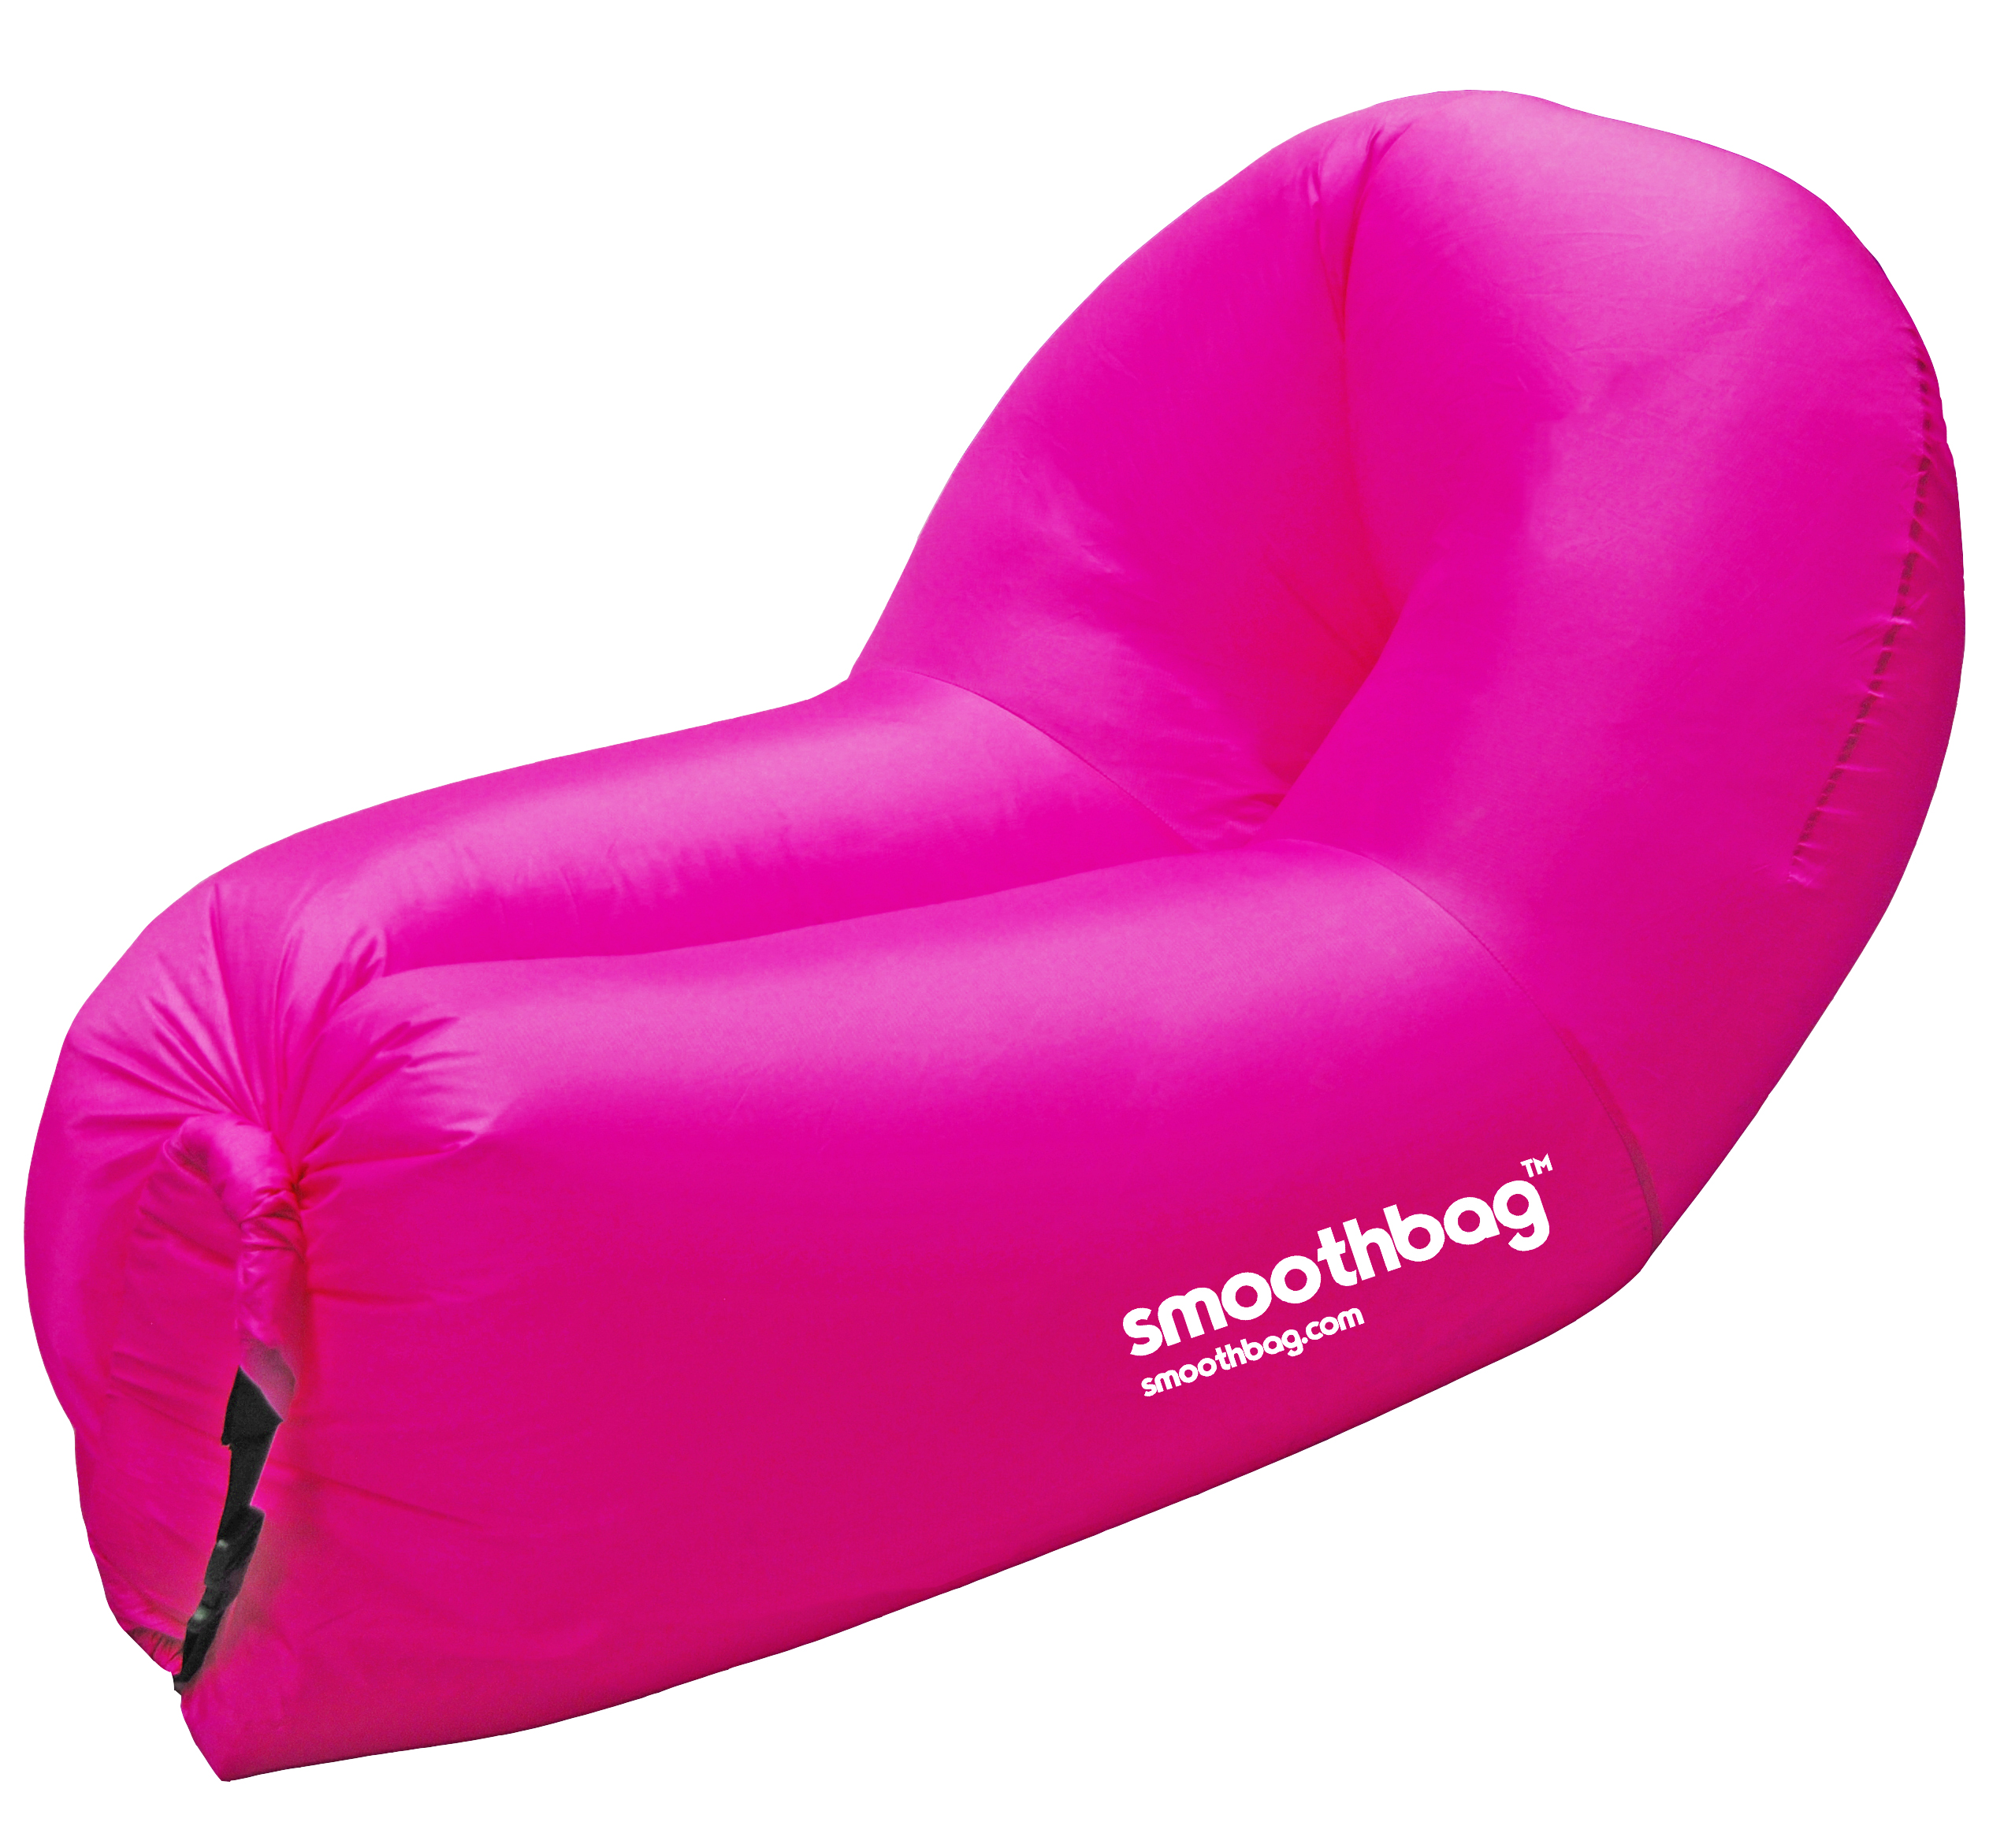 SMOOTHBAG SBPPINK PINK 2 IN 1 SOFA & CHAIR INFLATABLE LOUNGER